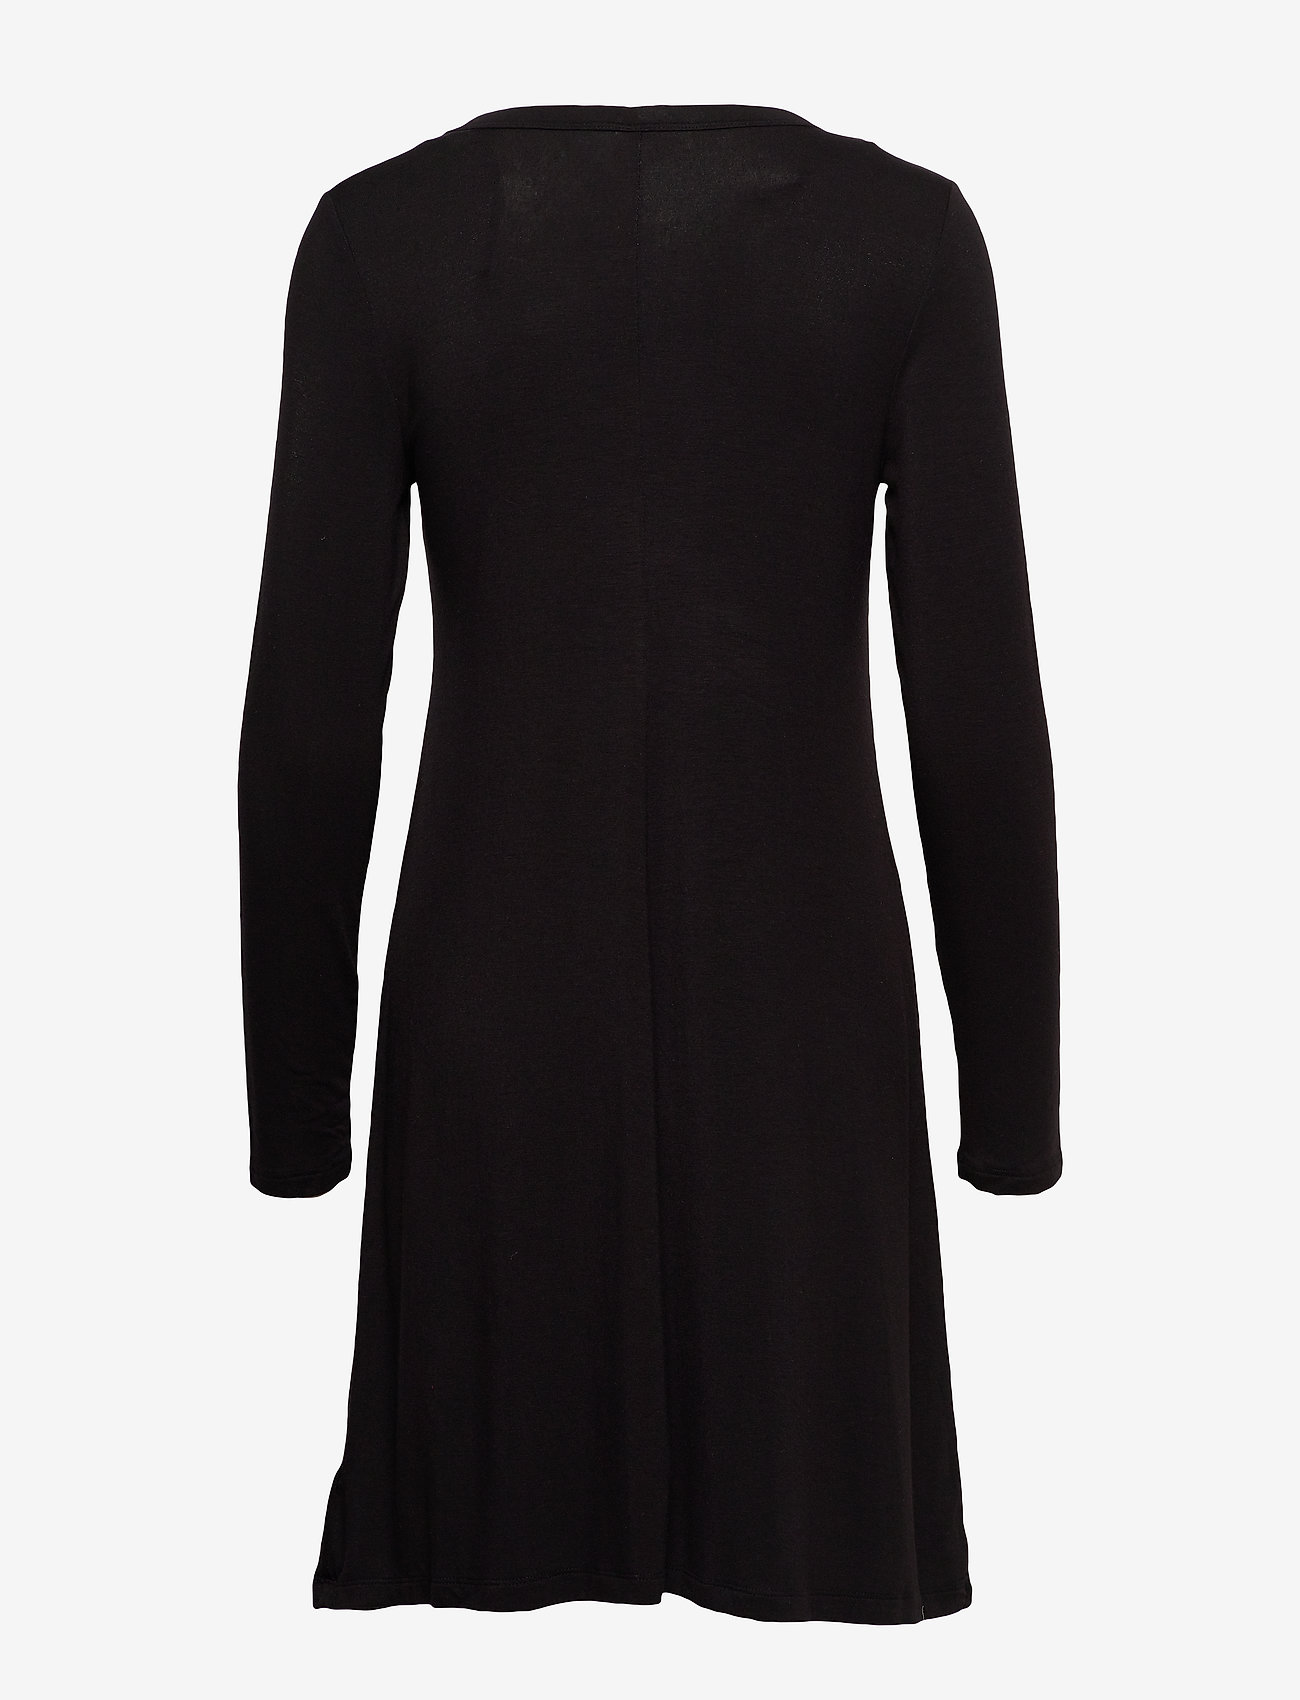 GAP U-Neck Swing Dress - Sukienki TRUE BLACK V2 2 - Kobiety Odzież.